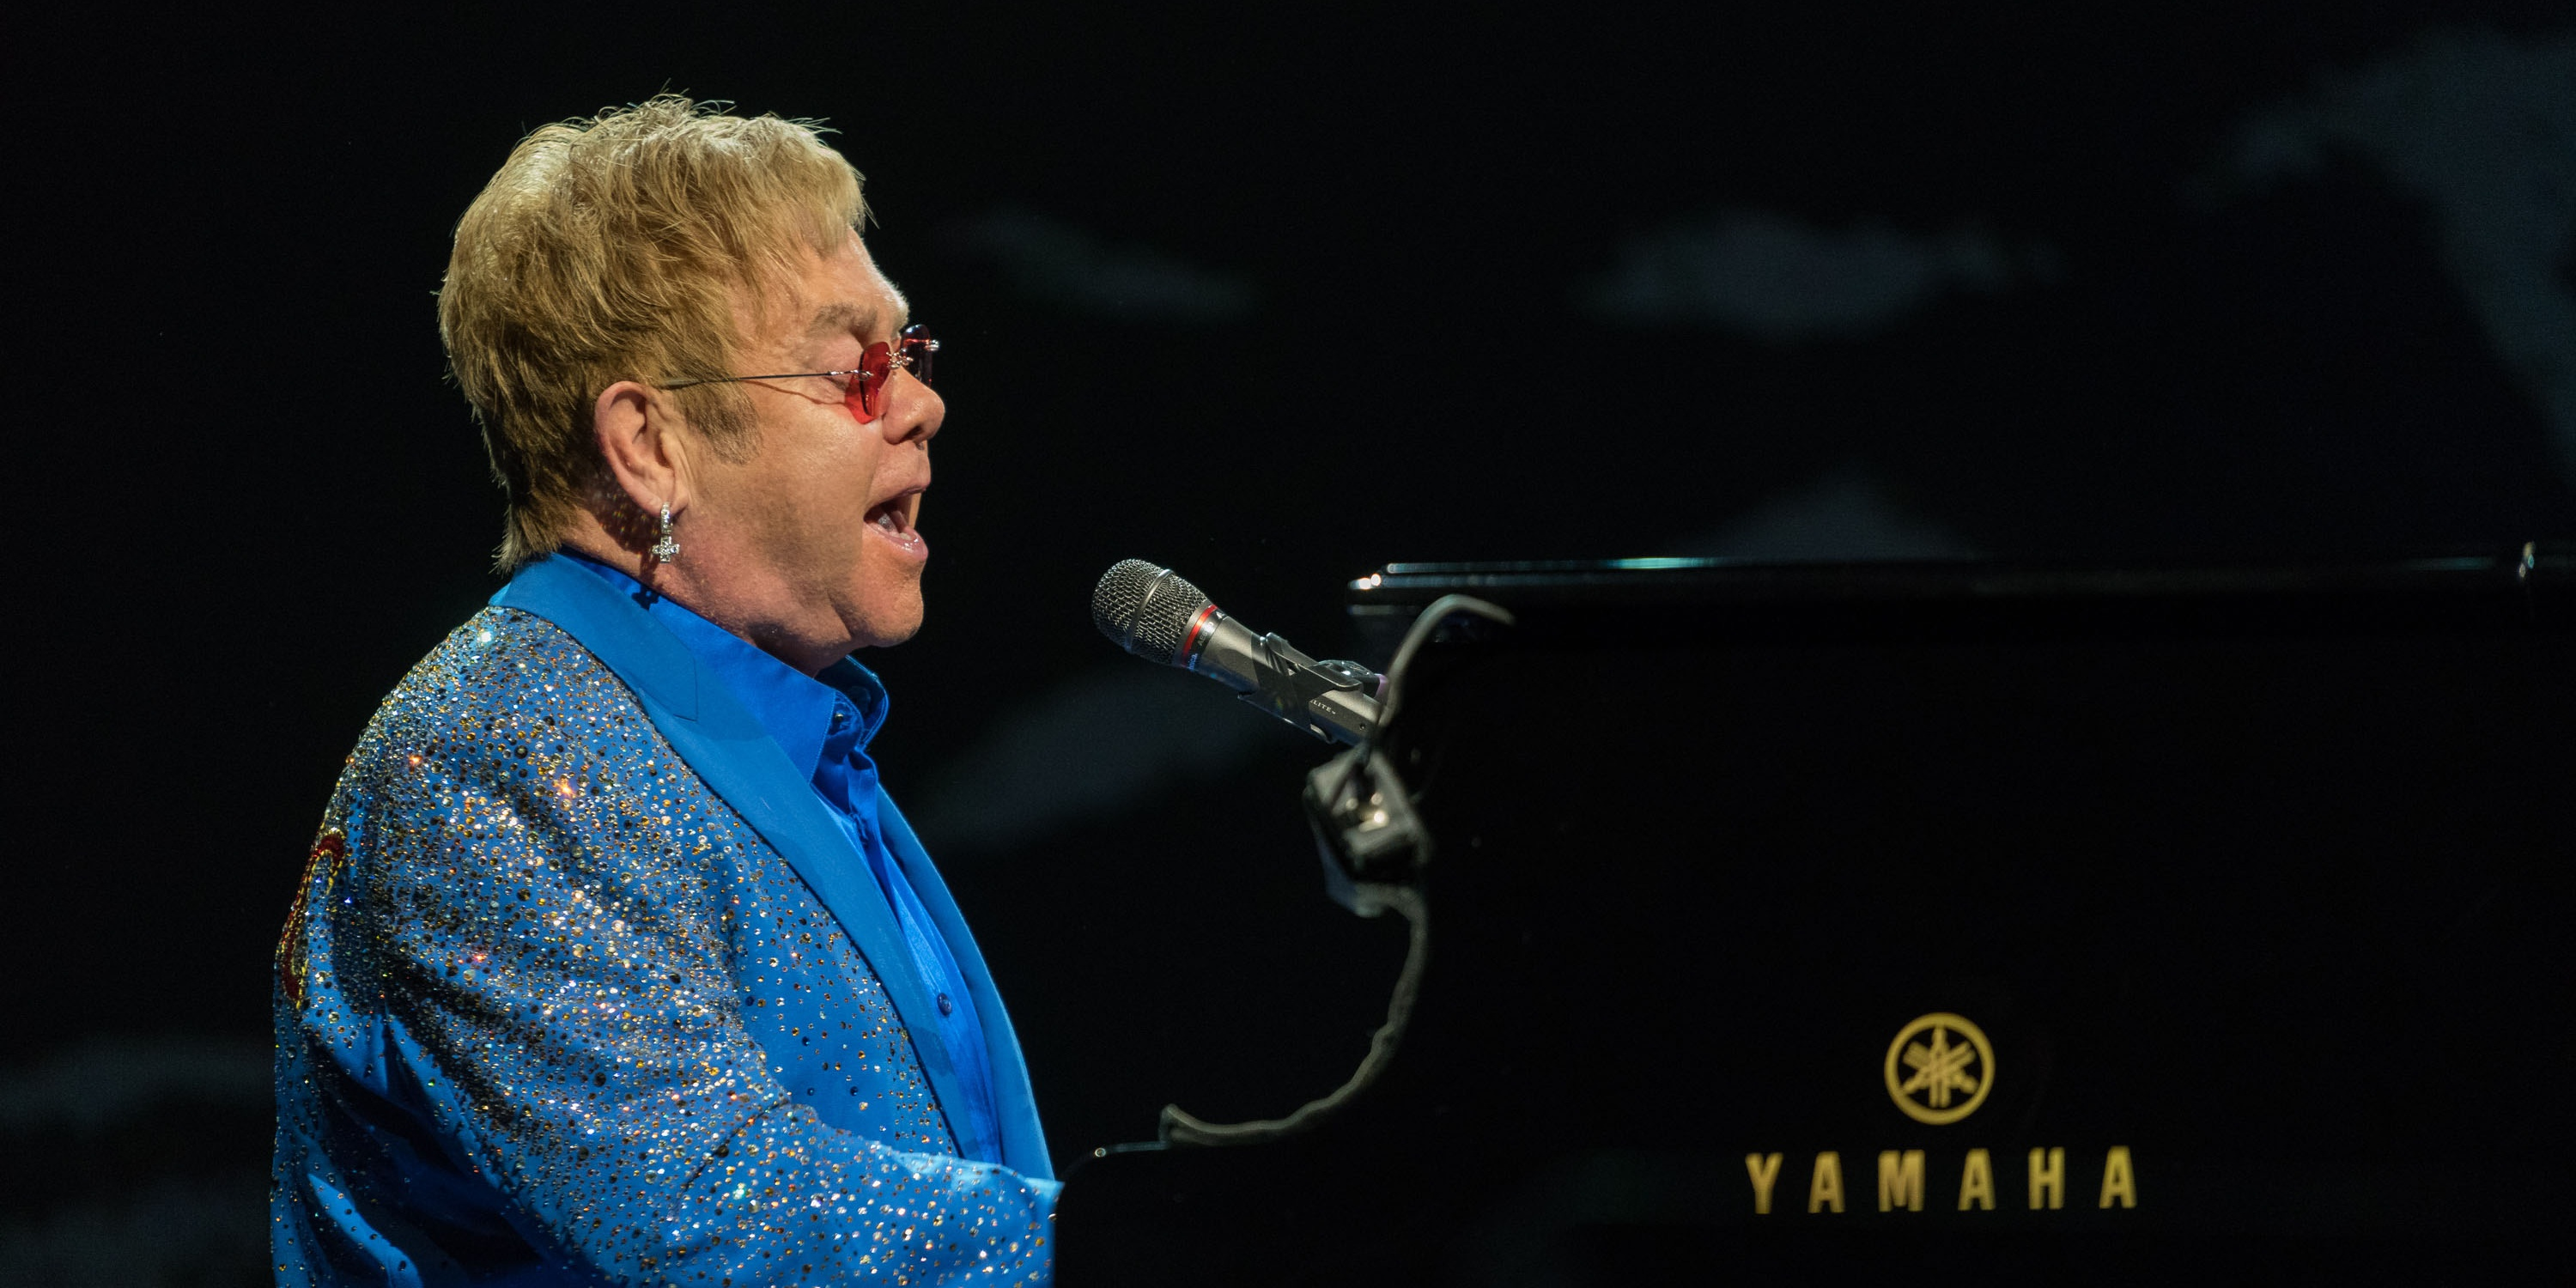 Elton John enthralls crowd during first night at The Star Theatre